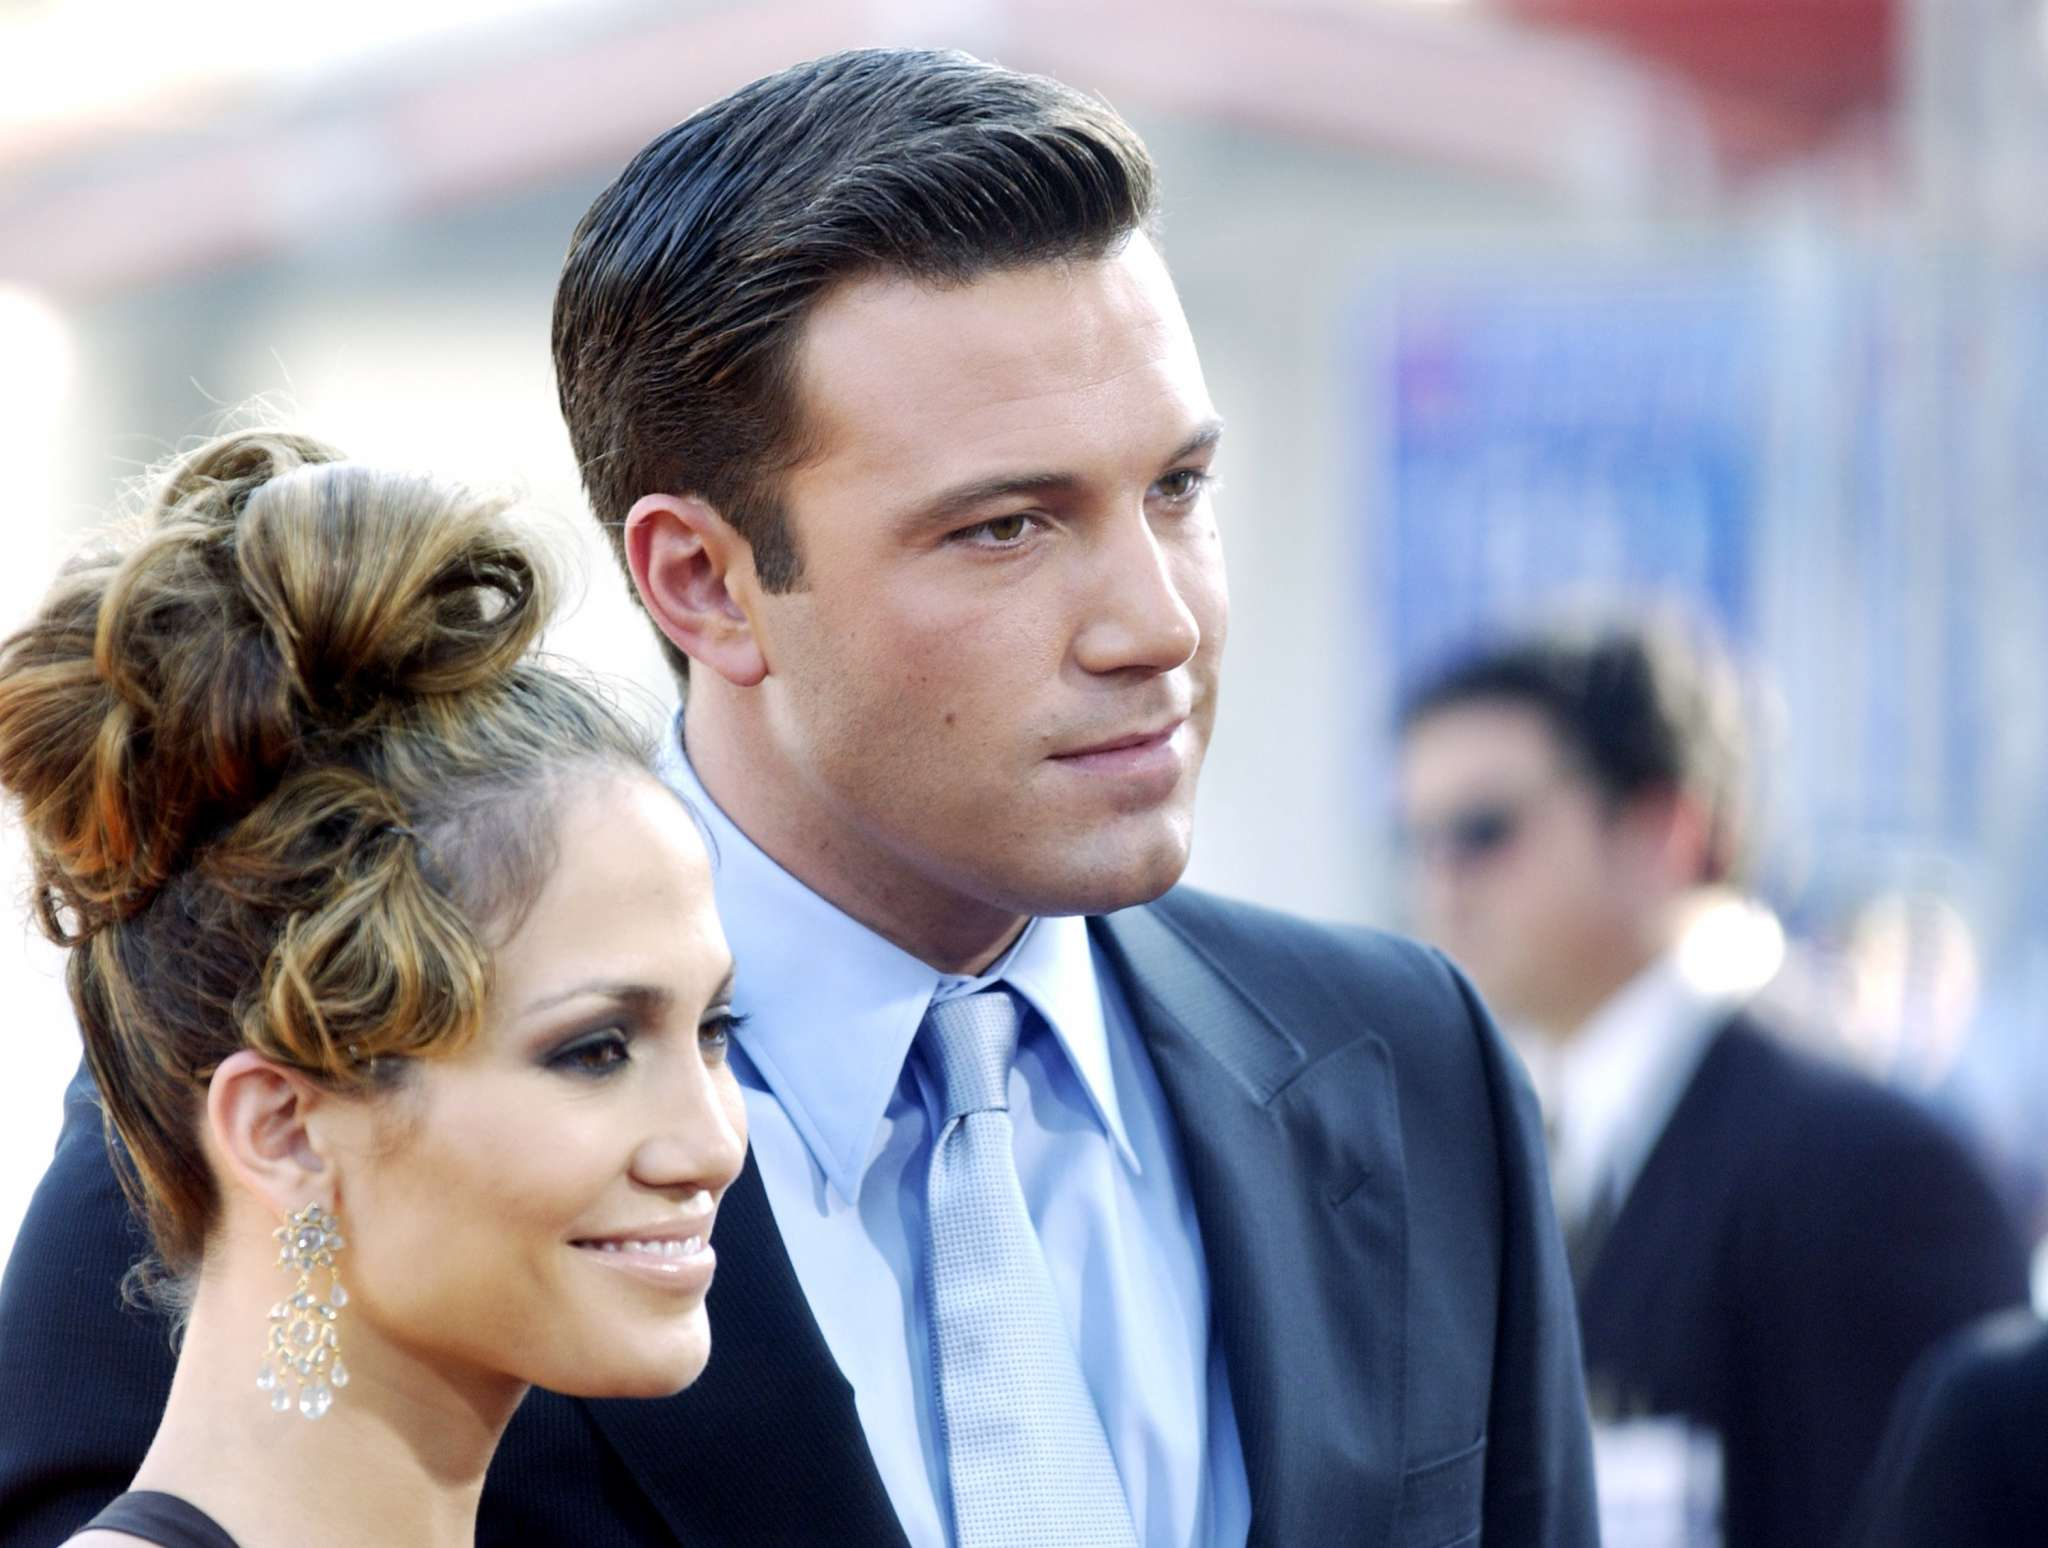 Ben Affleck Raves About Jennifer Lopez 17 Years After Split – 'You Look The Same As You Did In 2003'